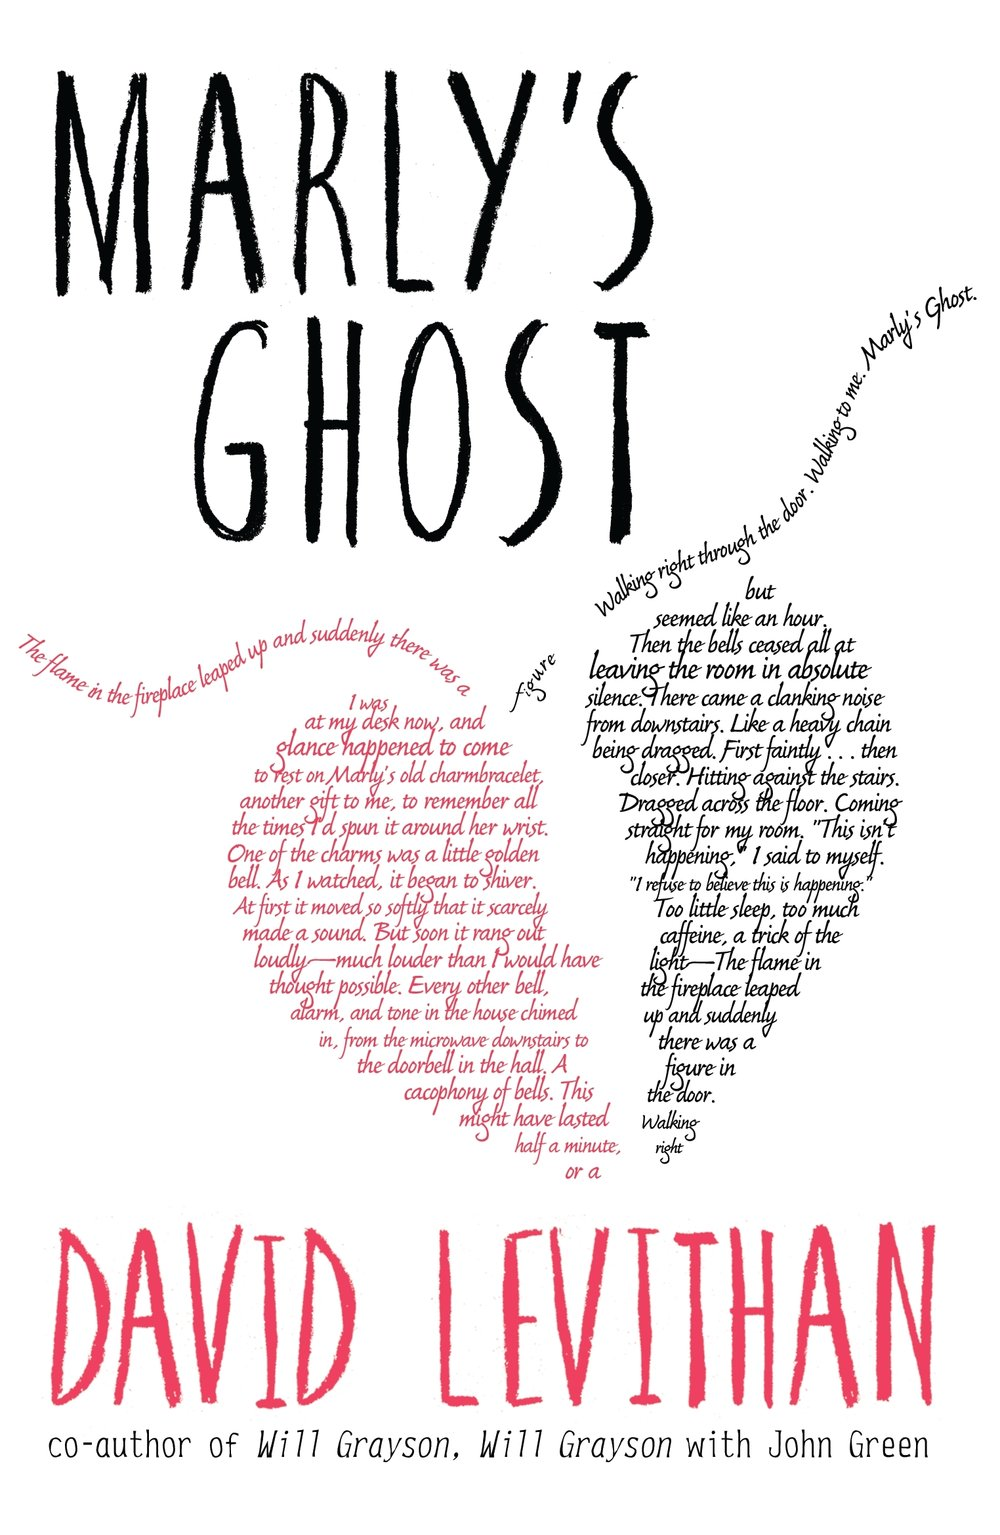 david-levithan-marlys-ghost.JPG